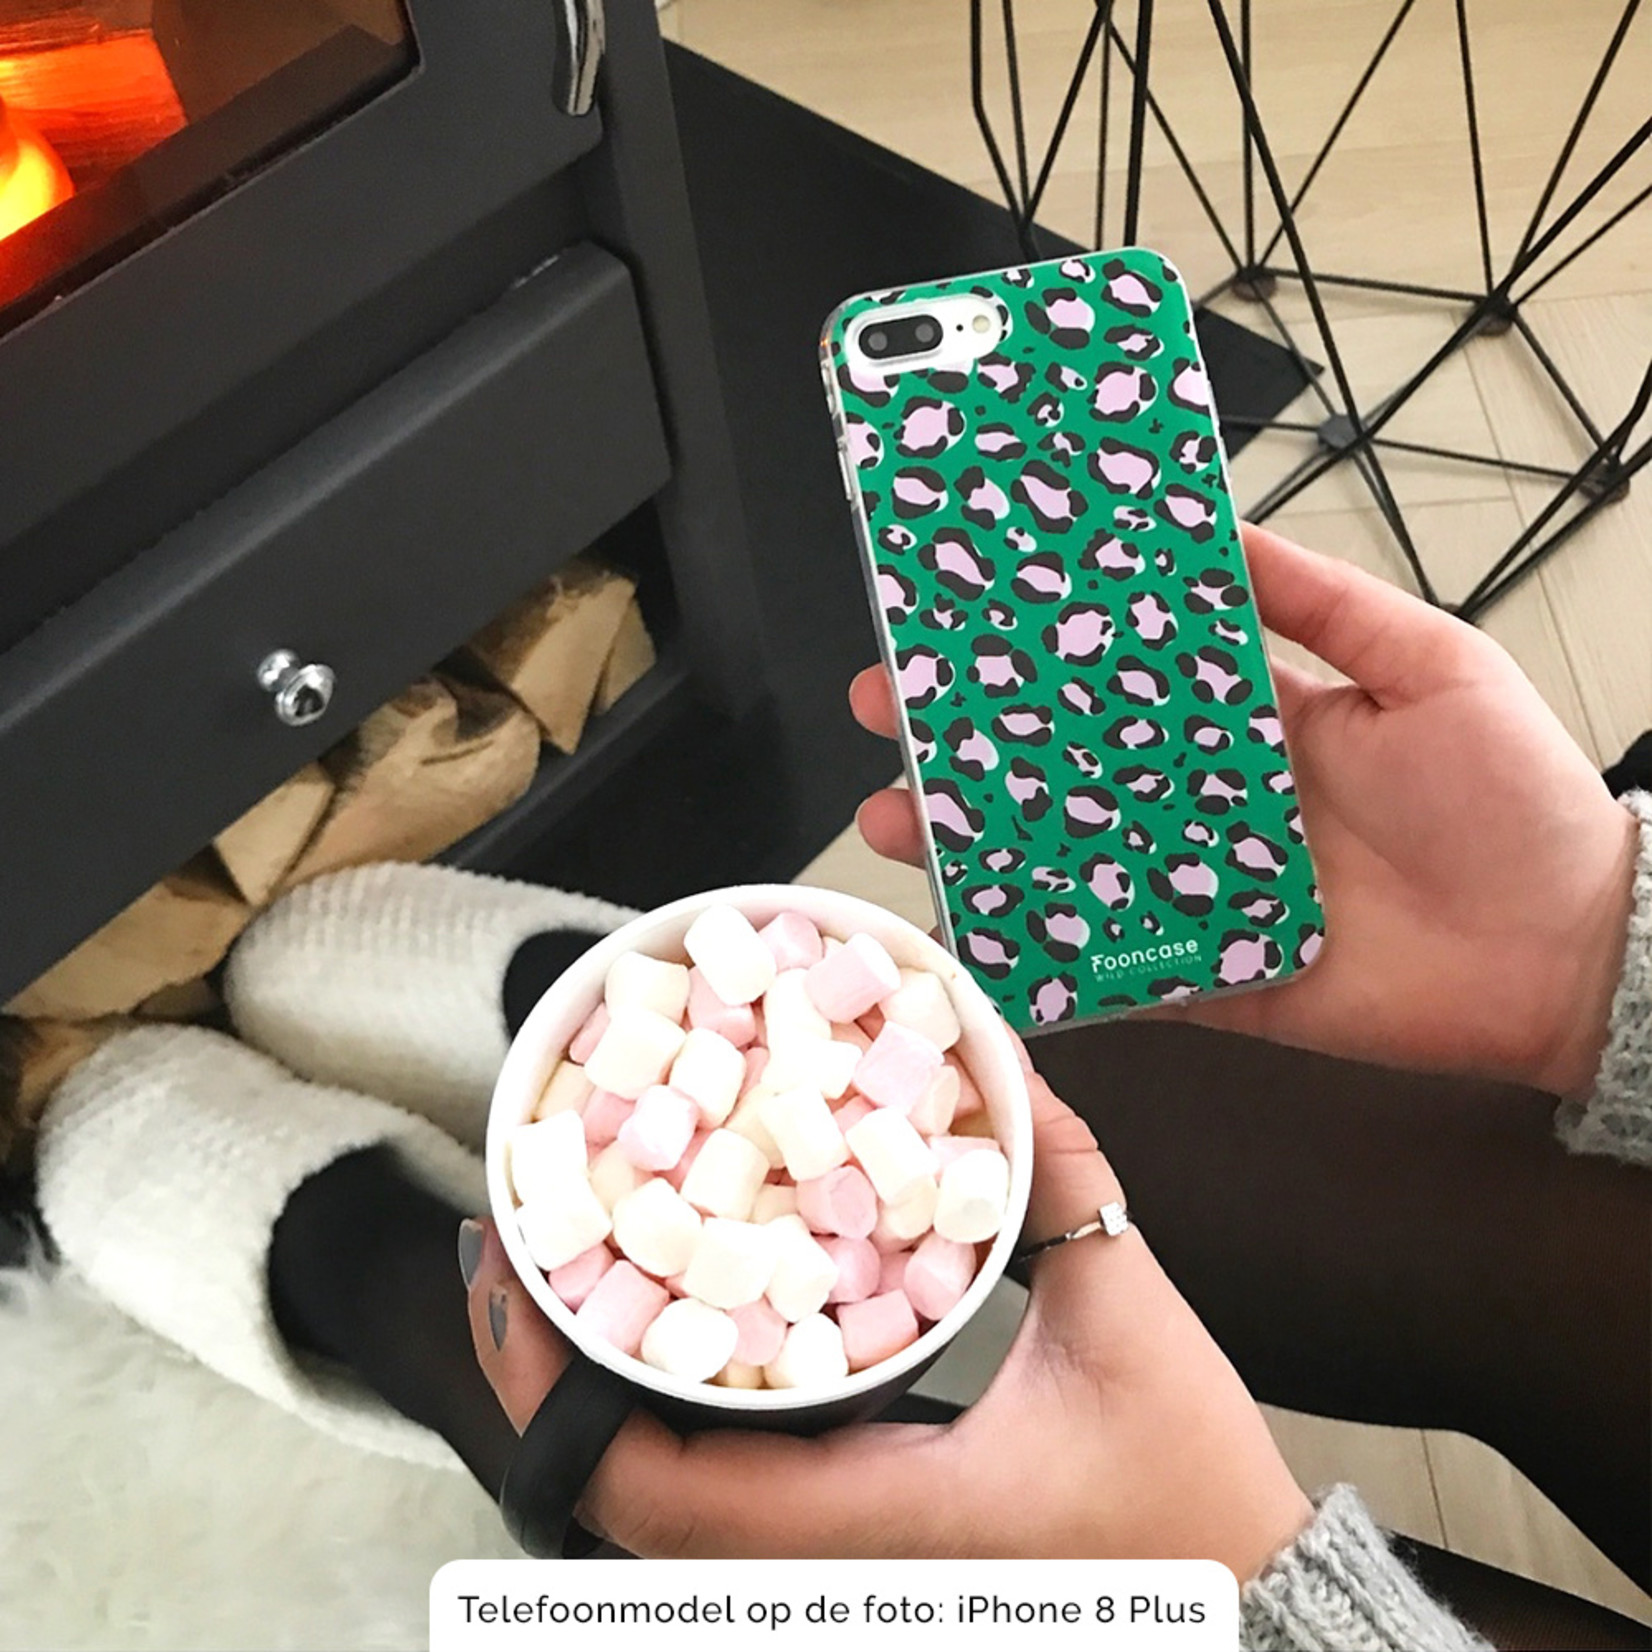 FOONCASE Samsung Galaxy S9 Plus hoesje TPU Soft Case - Back Cover - WILD COLLECTION / Luipaard / Leopard print / Groen